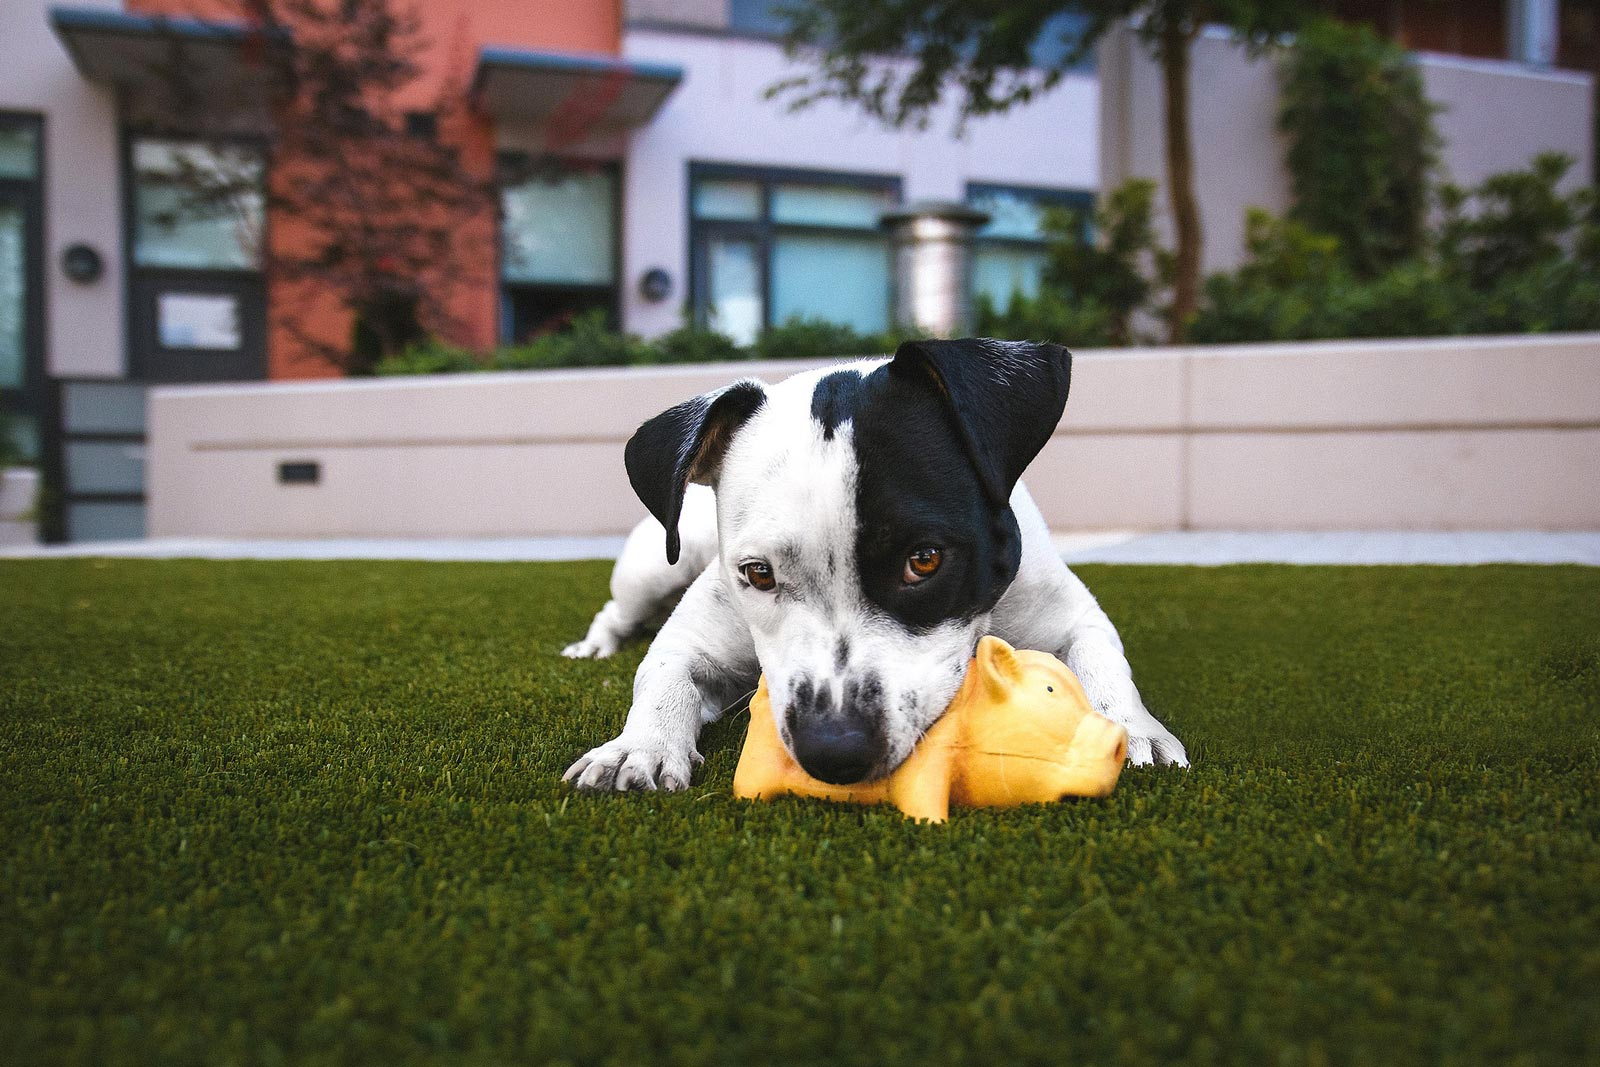 Puppy laying on grass looking at the camera with toy in mouth